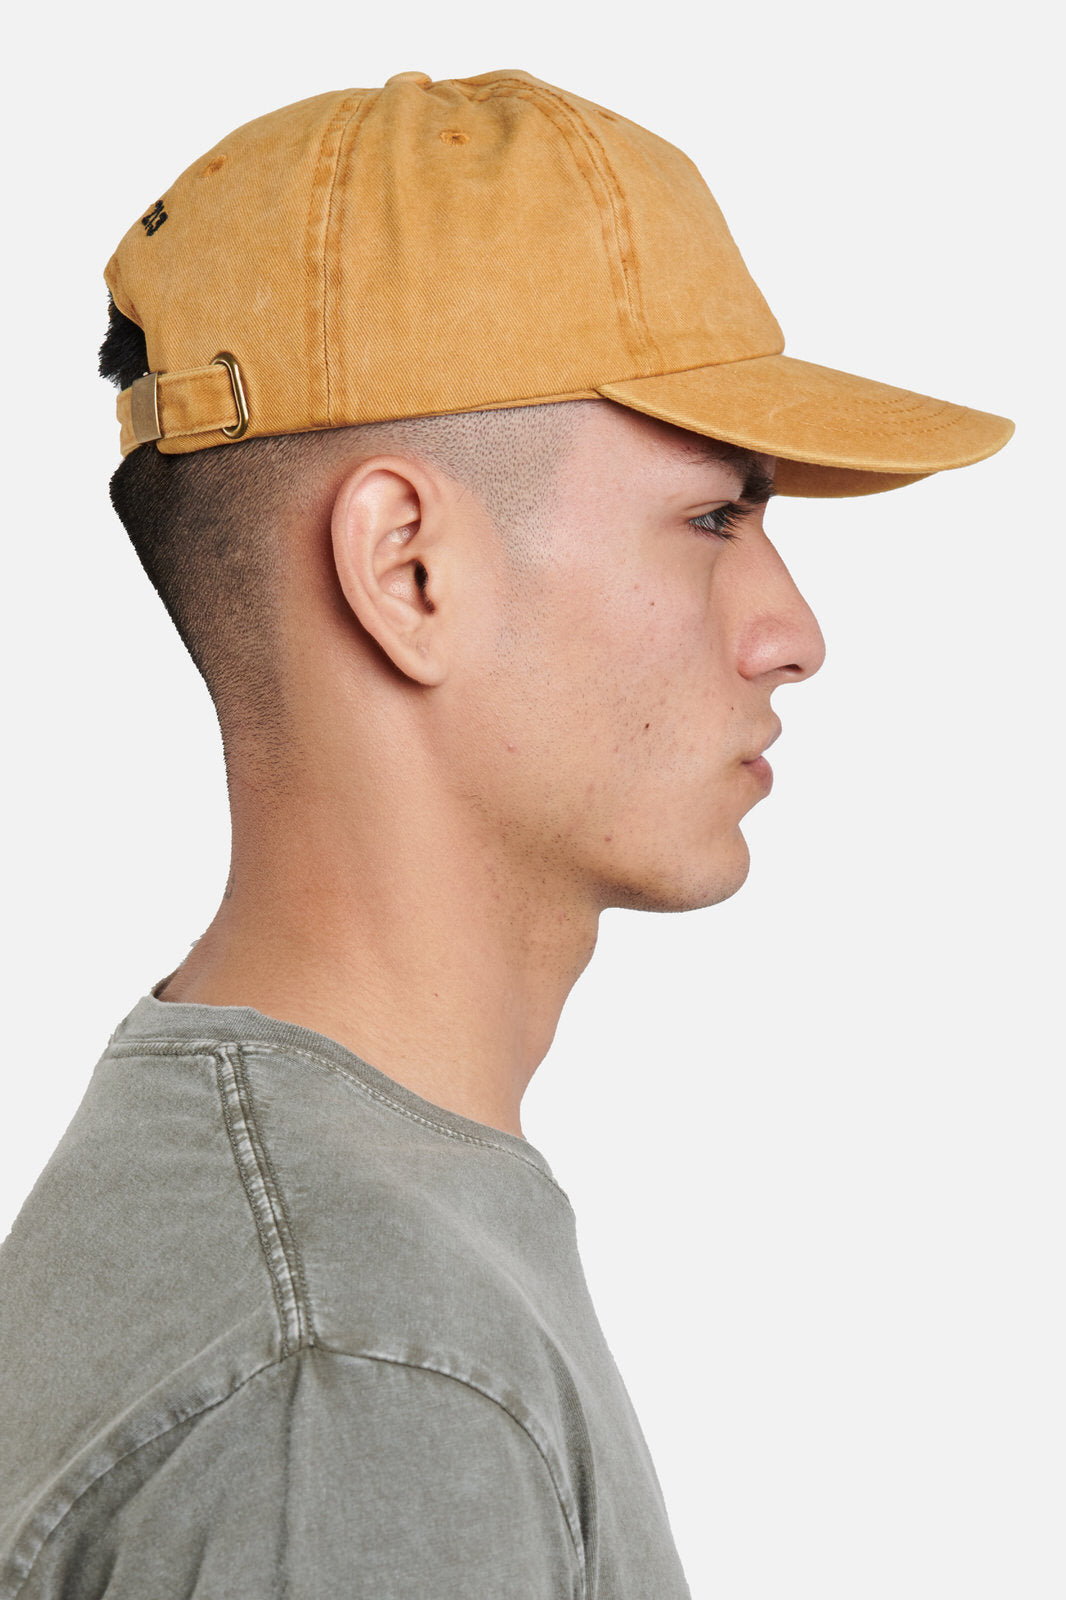 melrose article 7 pigment dyed logo hat - scrt society